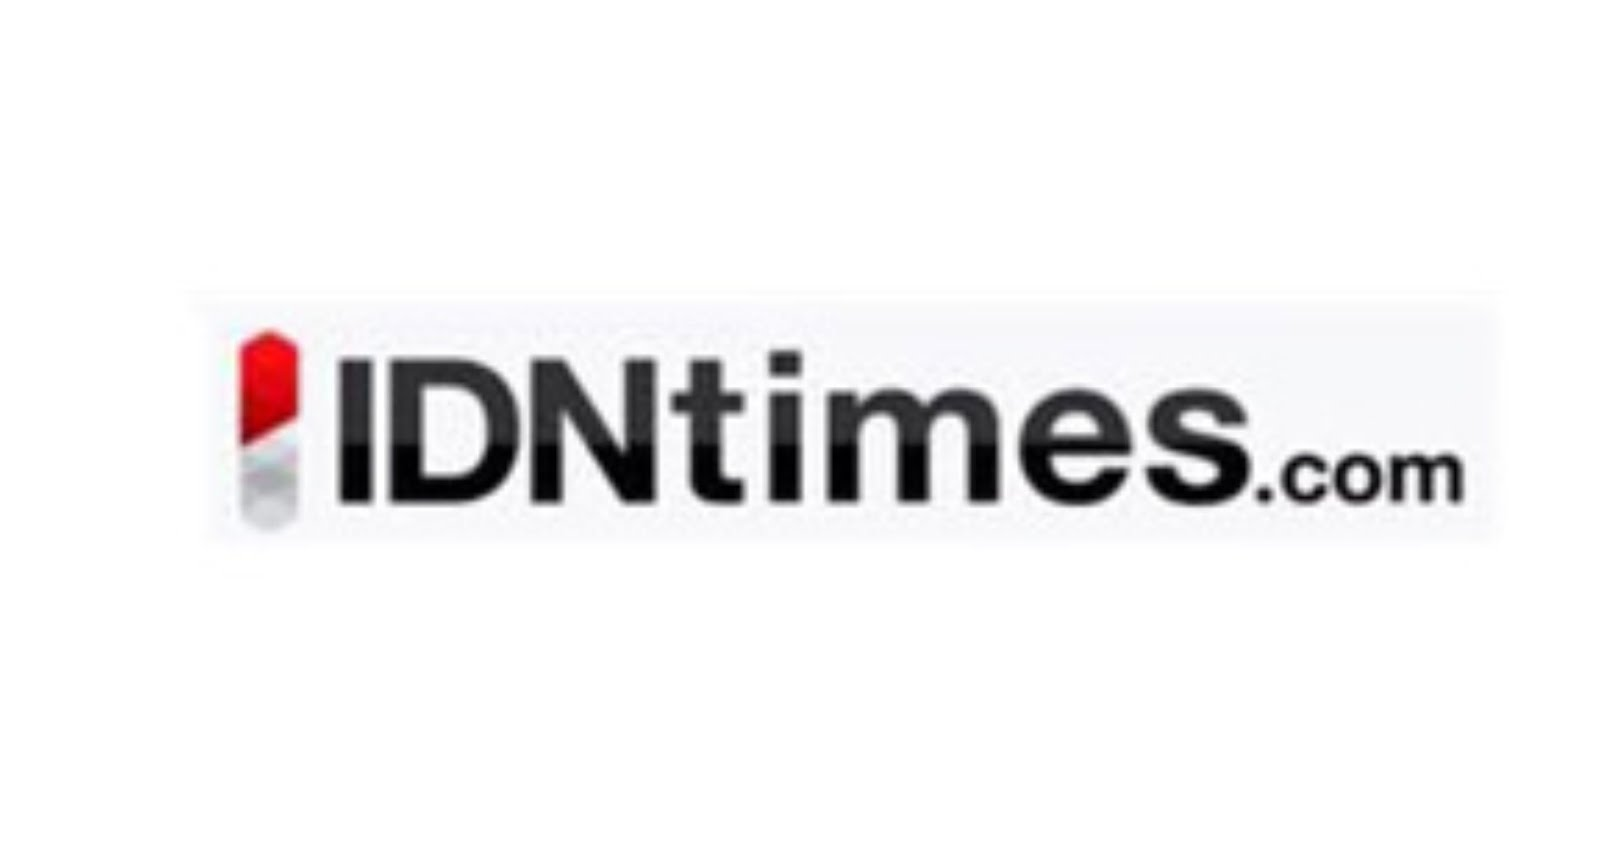 Follow Me On IDNtimes